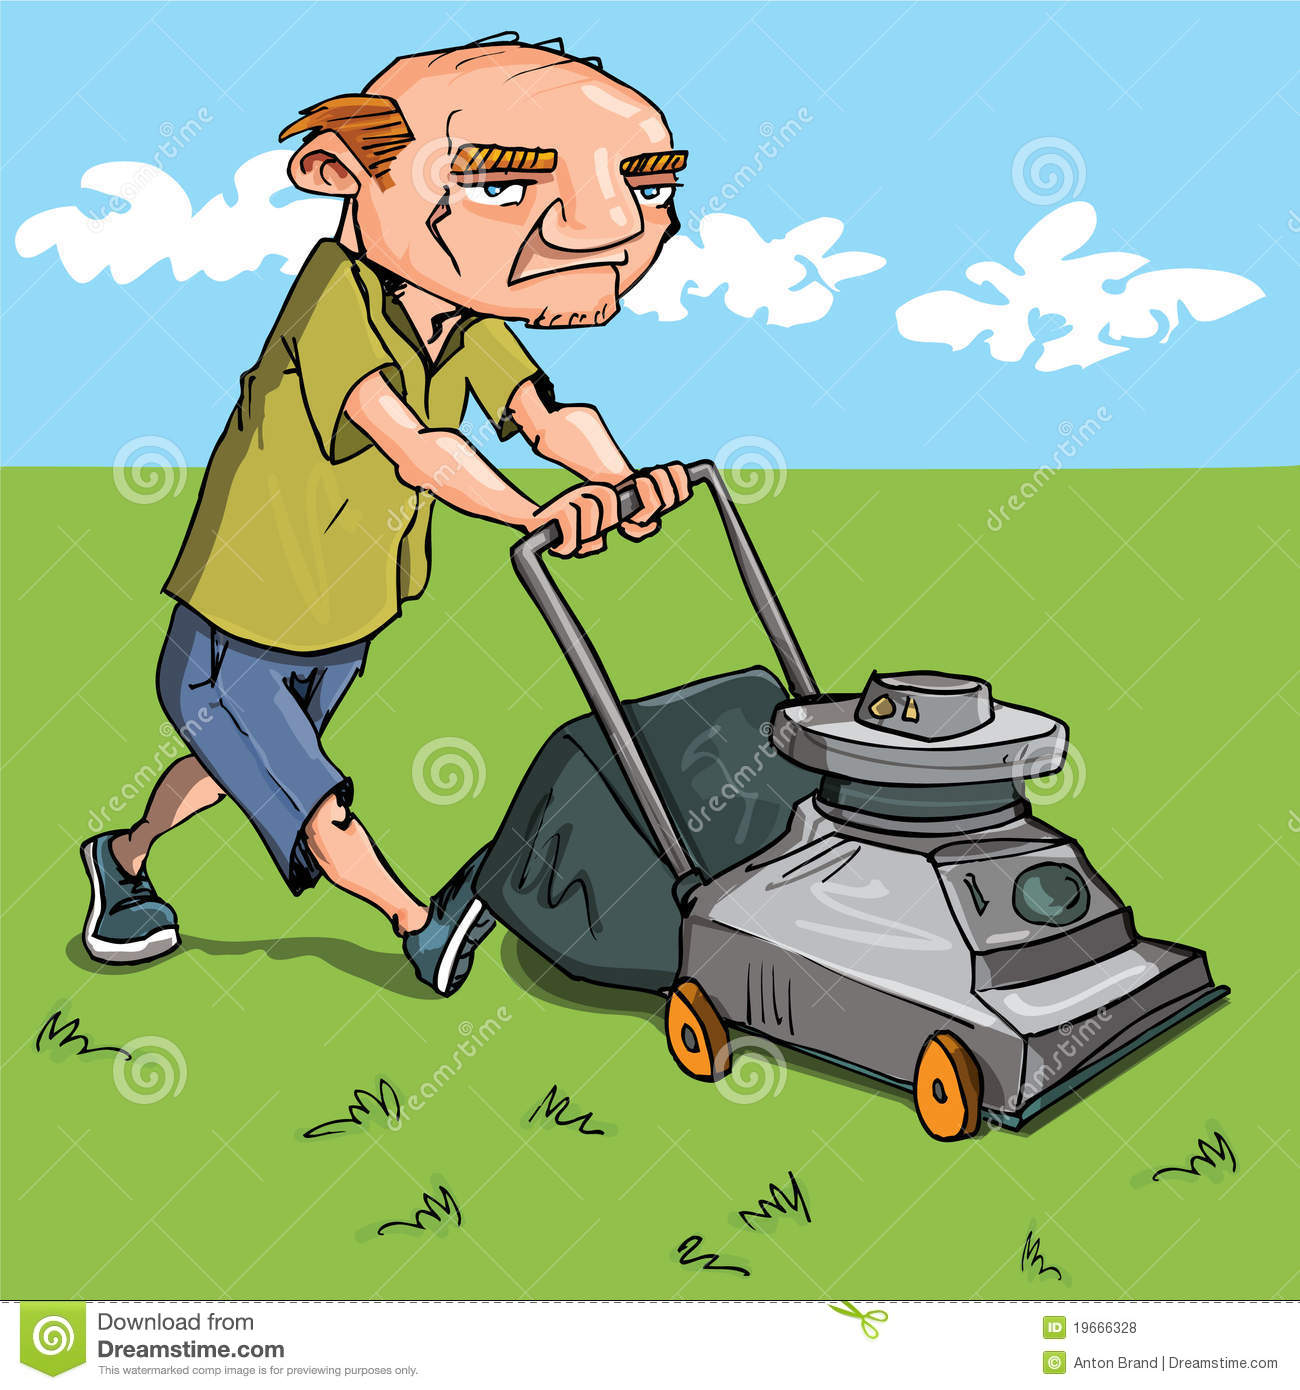 cartoon man mowing his lawn stock vector illustration lawn mowing clipart black and white lawn mowing clipart black and white